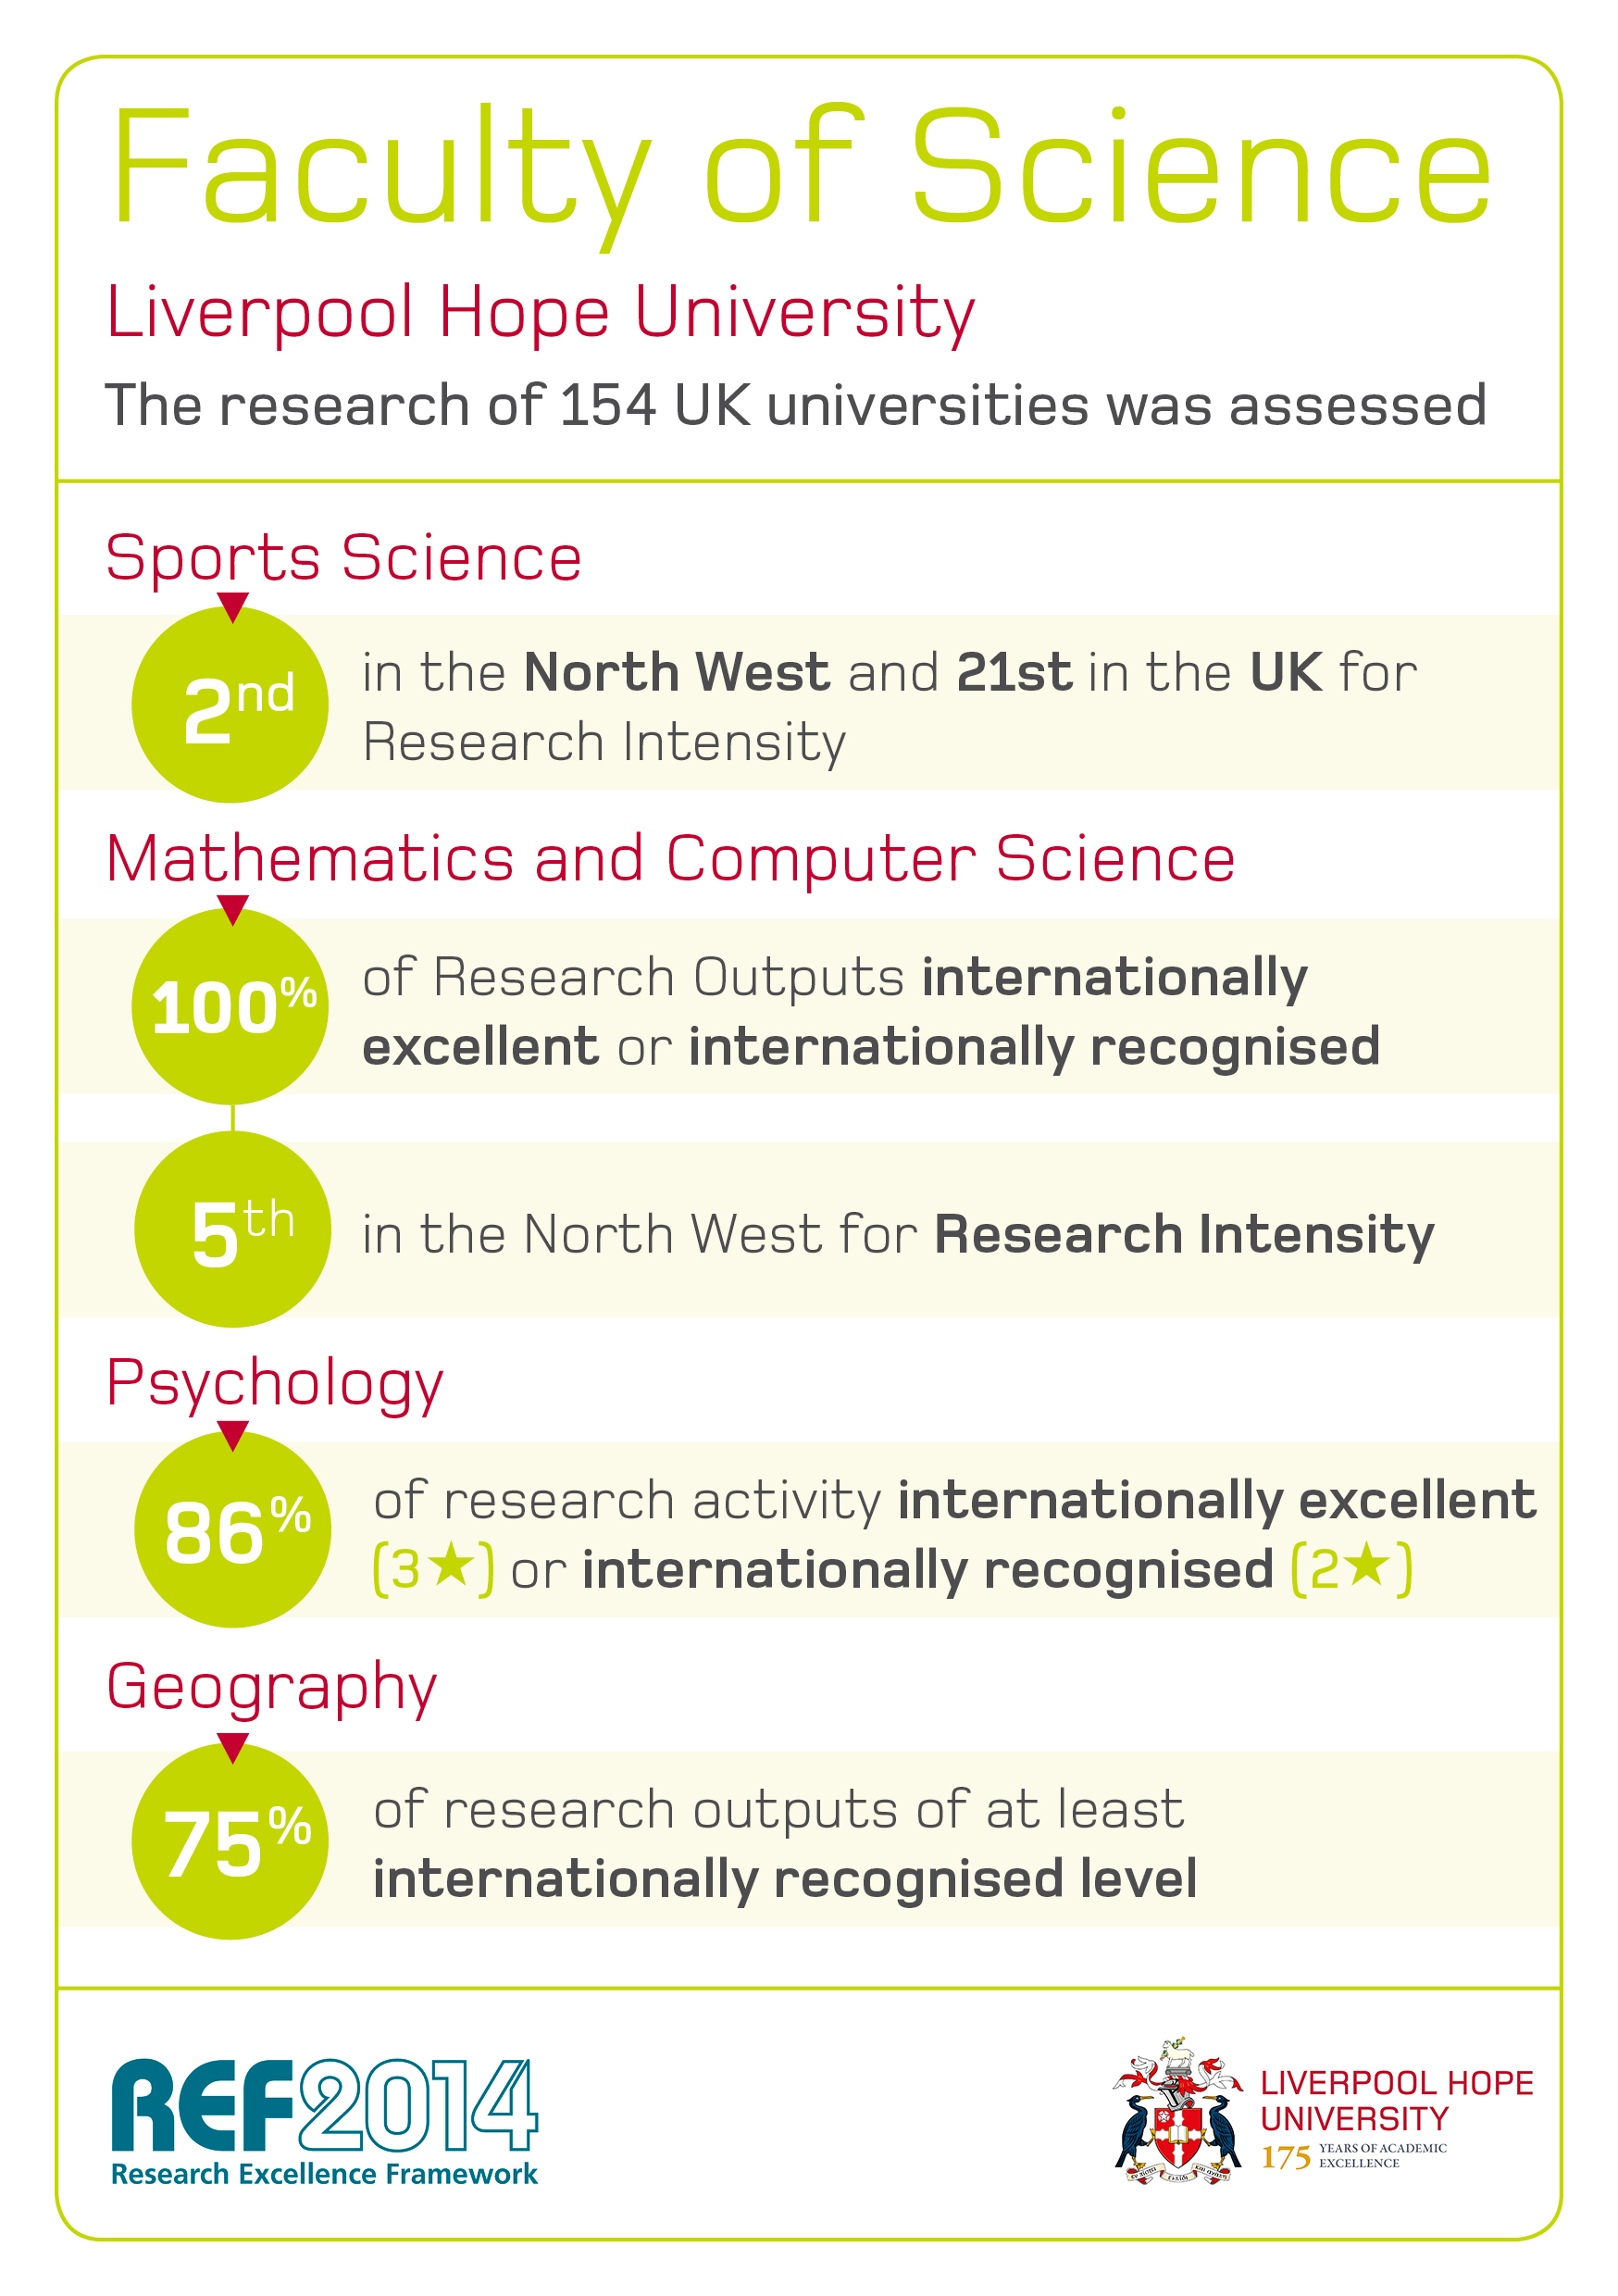 REF 2014 Faculty of Science Graphic